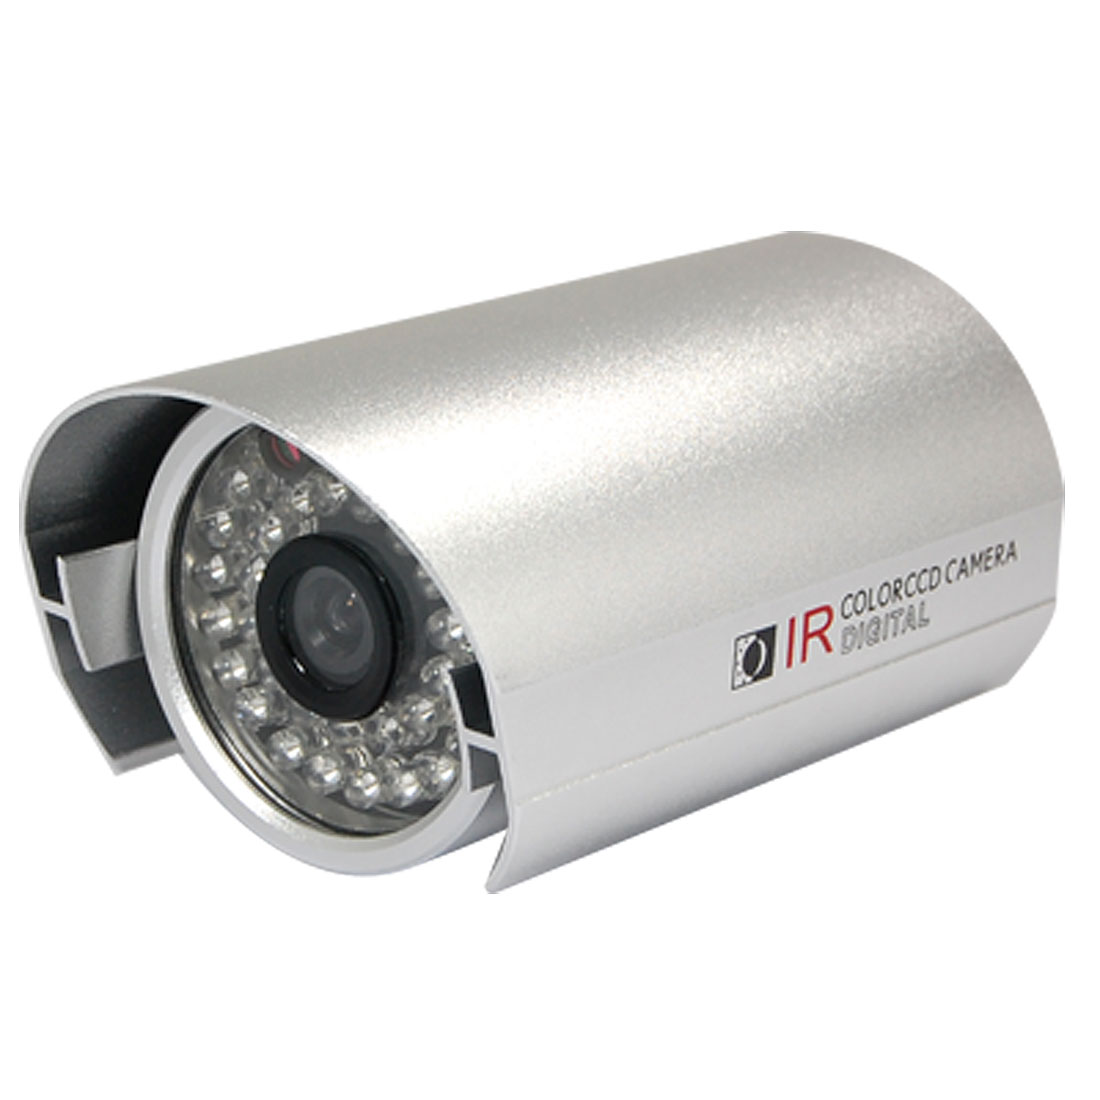 夏普ccd_1/4 Sharp CCD PAL 420TVL IR Day Night Vision CCTV Surveillance Security Camera ...